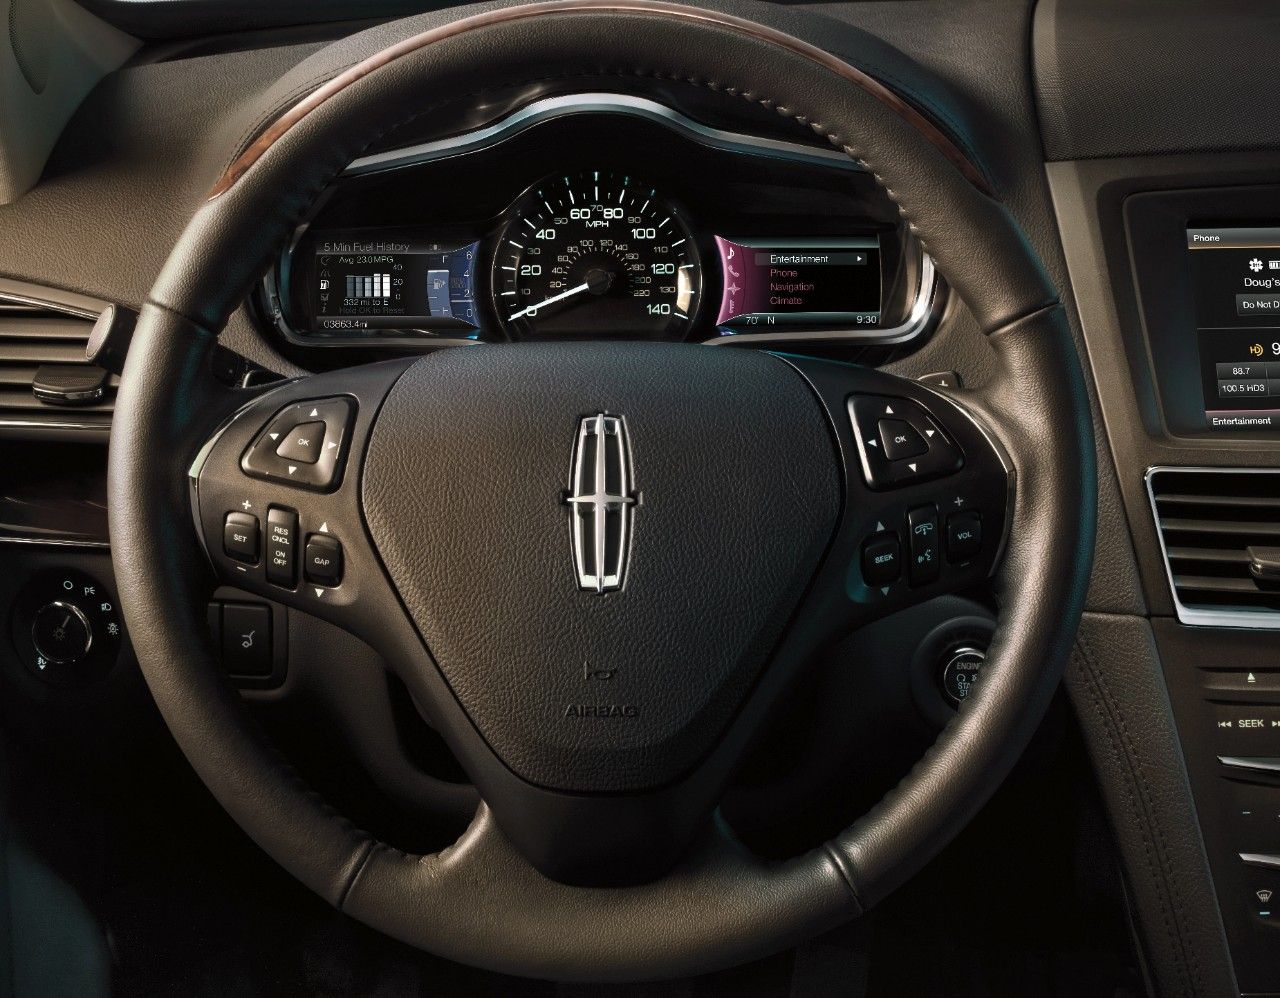 2014 Lincoln MKT steering wheel